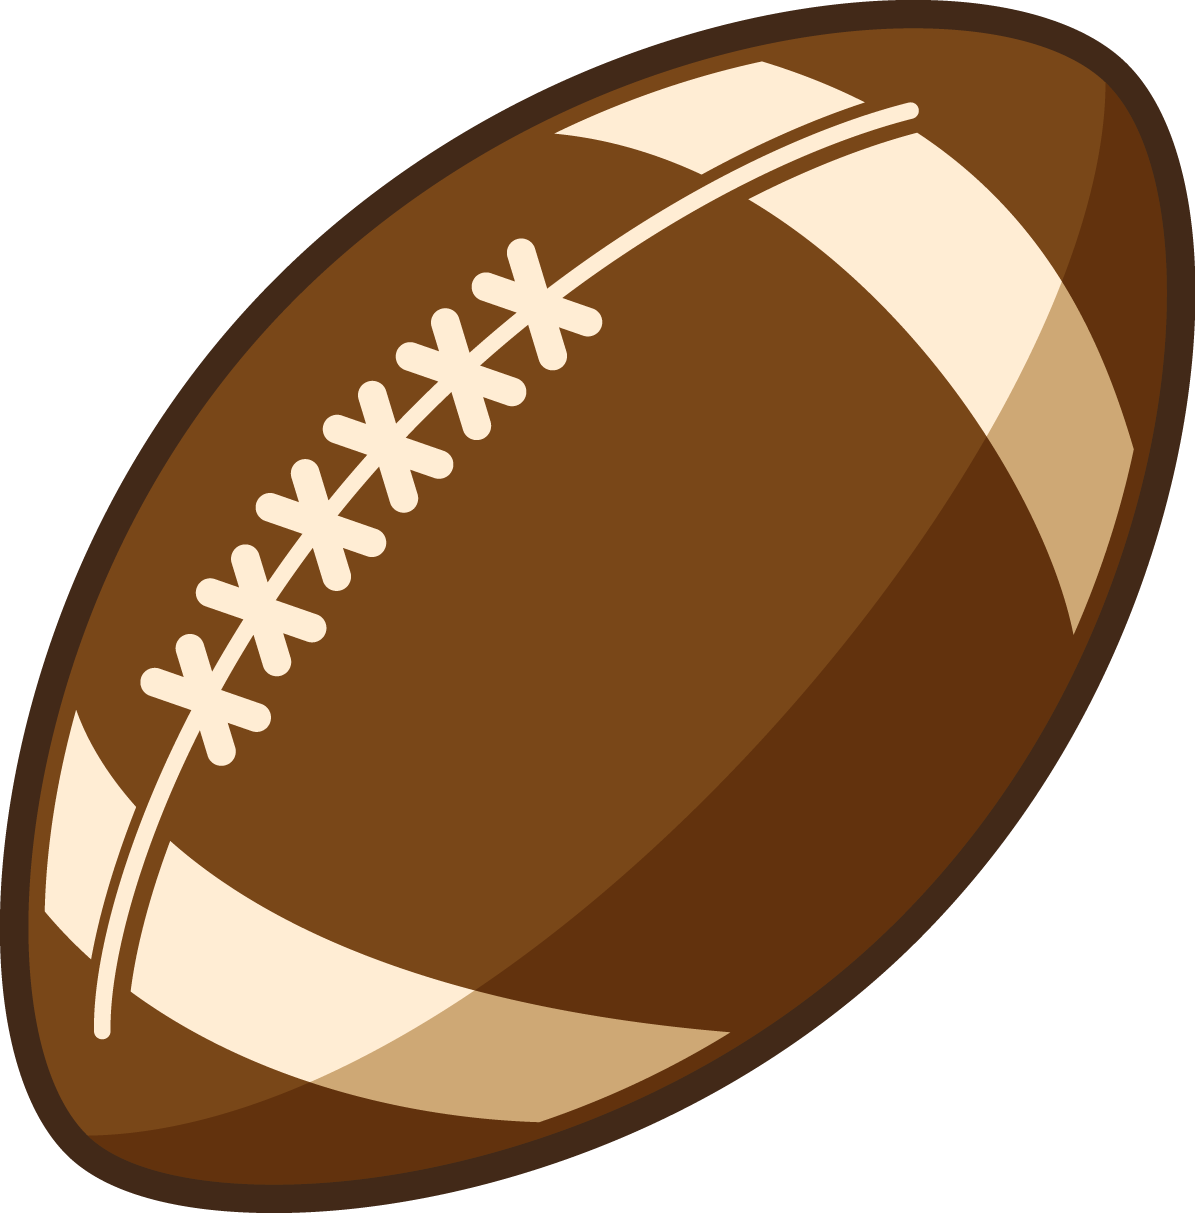 Free football clipart png graphic transparent American Football Clipart | Free download best American Football ... graphic transparent